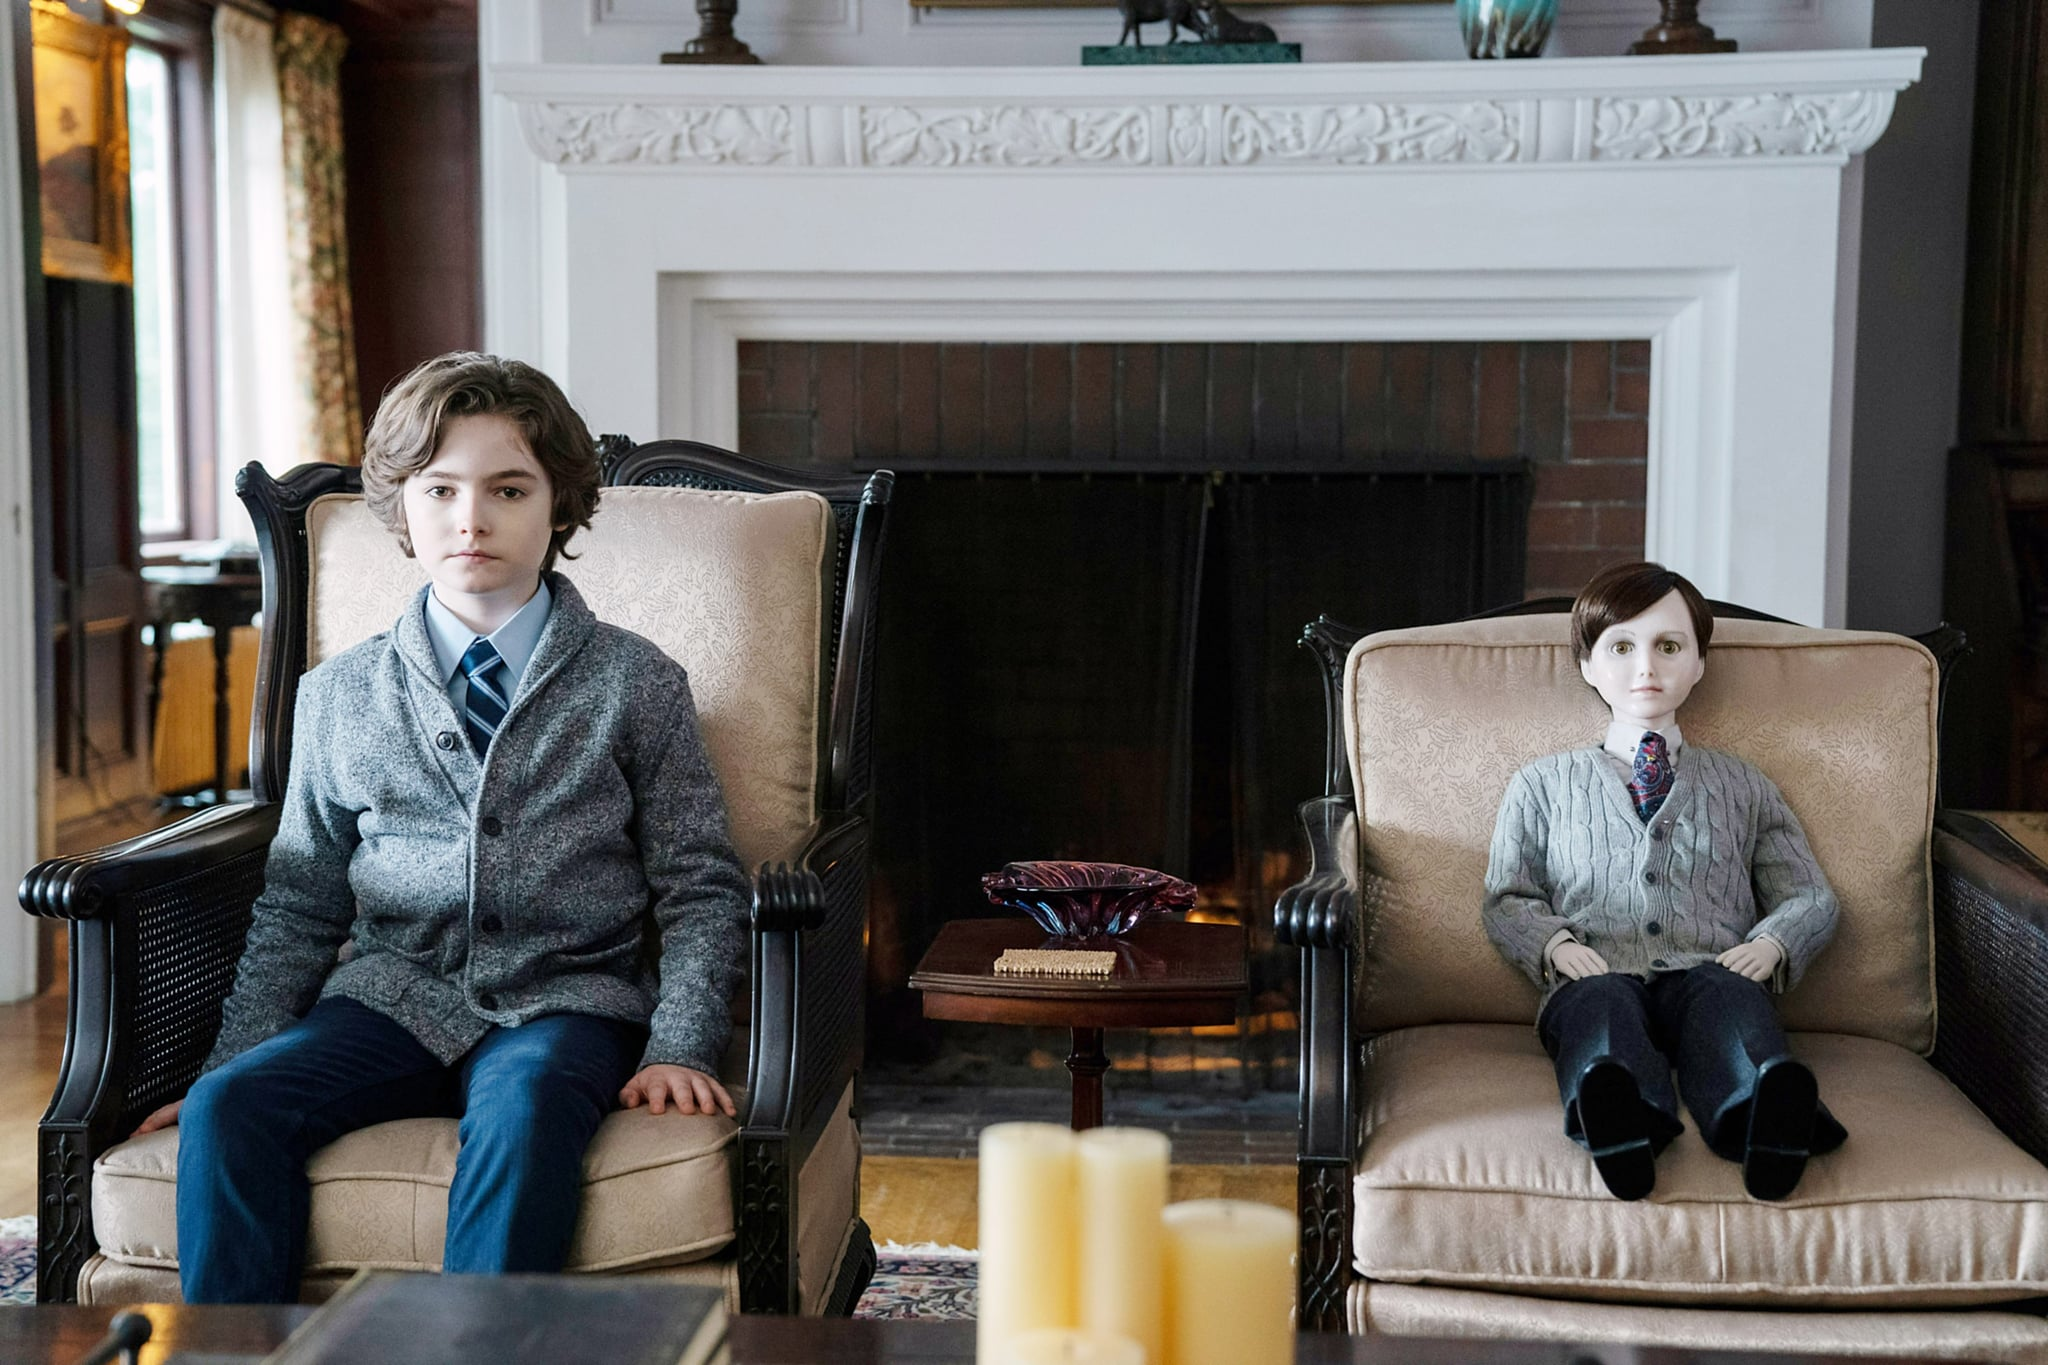 BRAHMS: THE BOY II, Christopher Convery, Brahms, 2020. photo: David Bukach /  STX Films / courtesy Everett Collection